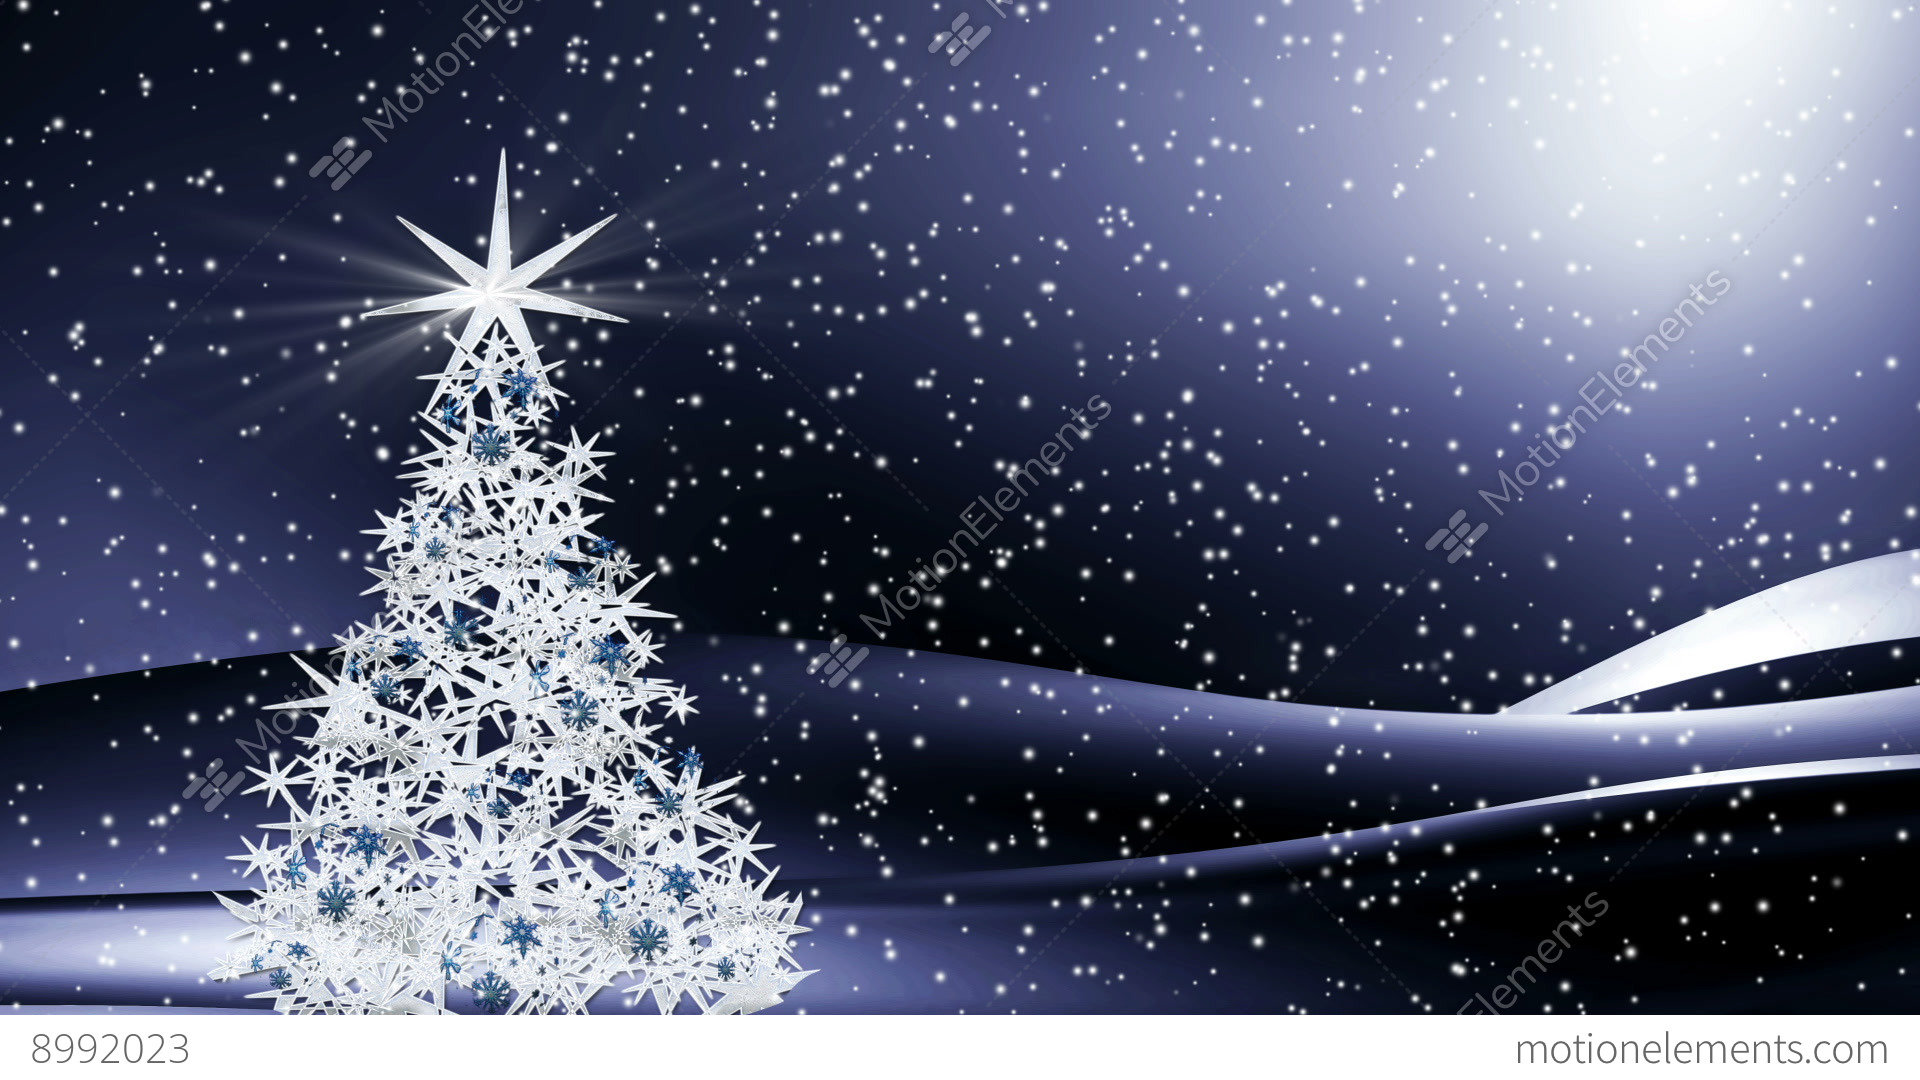 Sparkling Decorated Christmas Tree Shining In The Snowy Night Stock